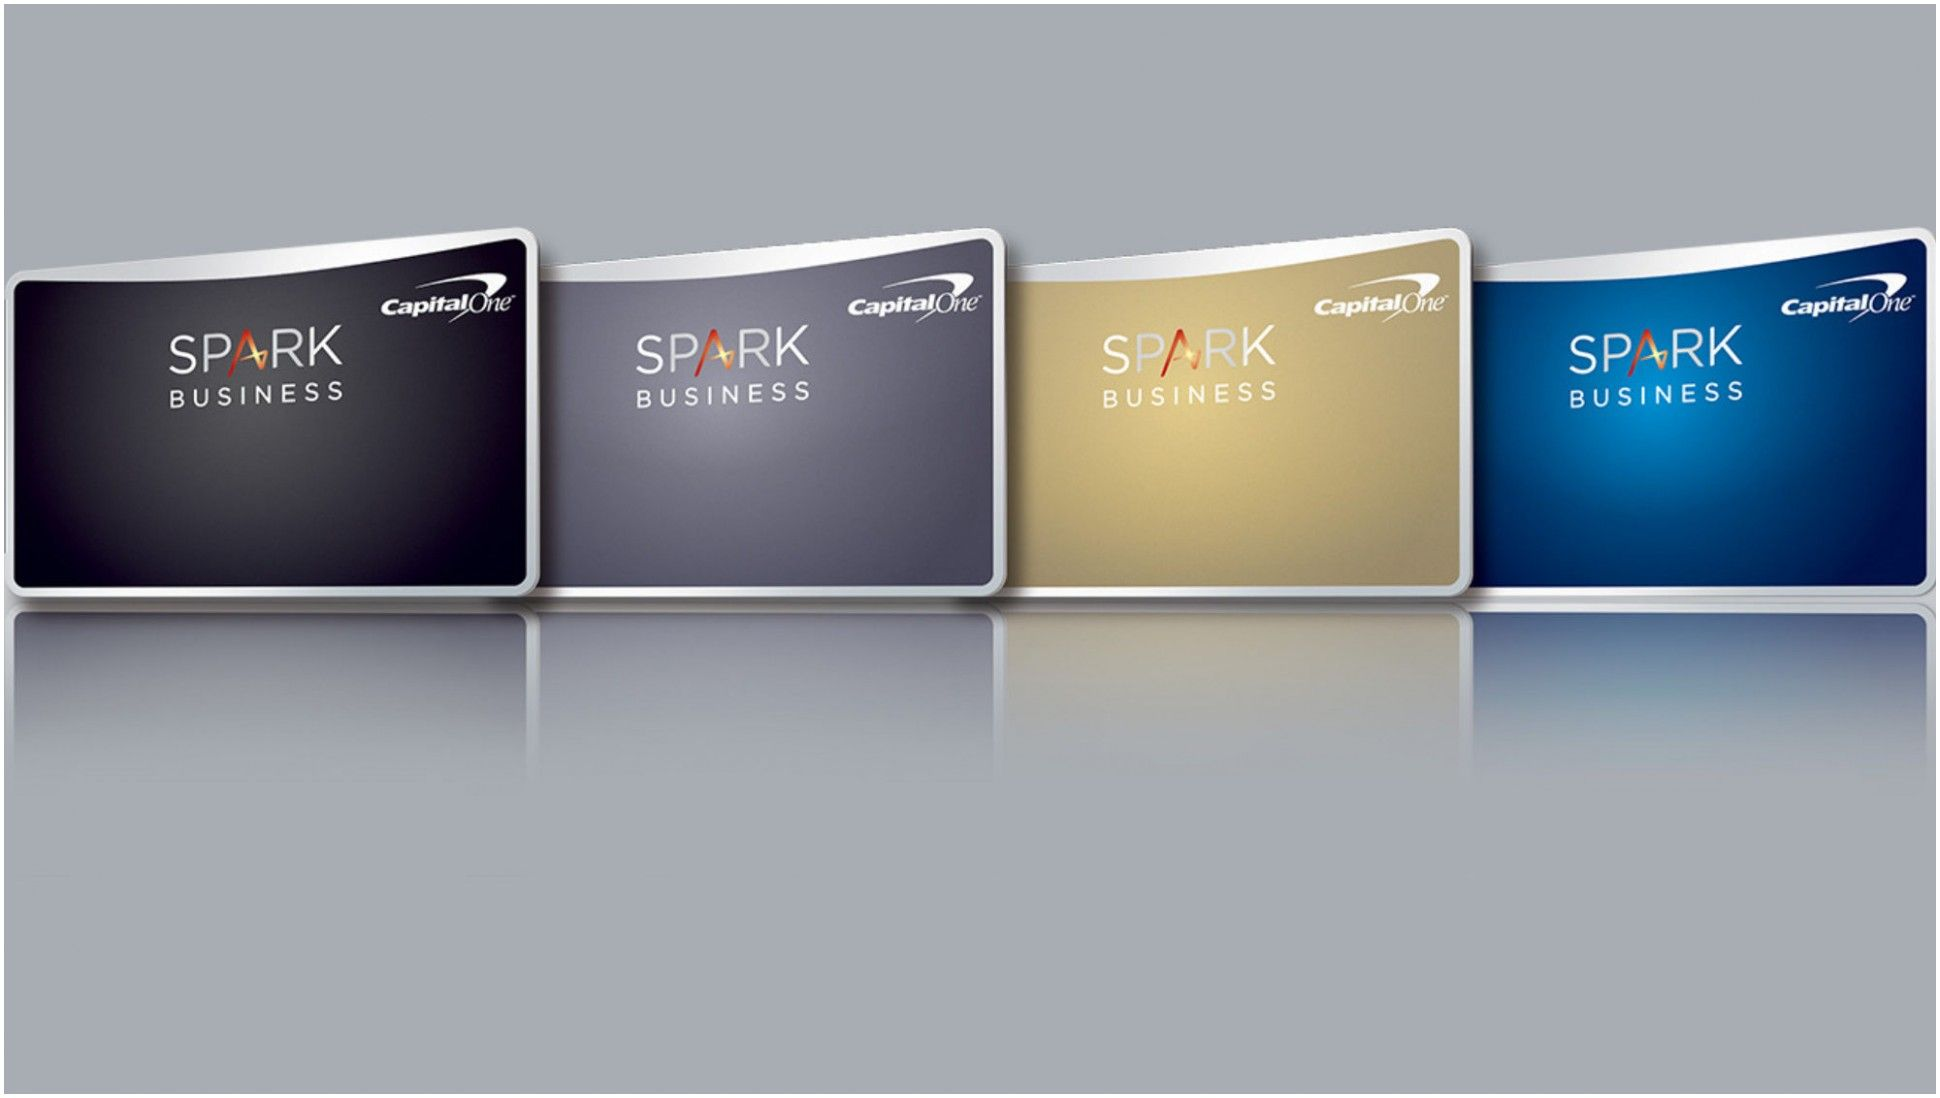 Ten Awesome Things You Can Learn From Capital One Spark Capital One Spark Business Capital Business Credit Cards Capital One